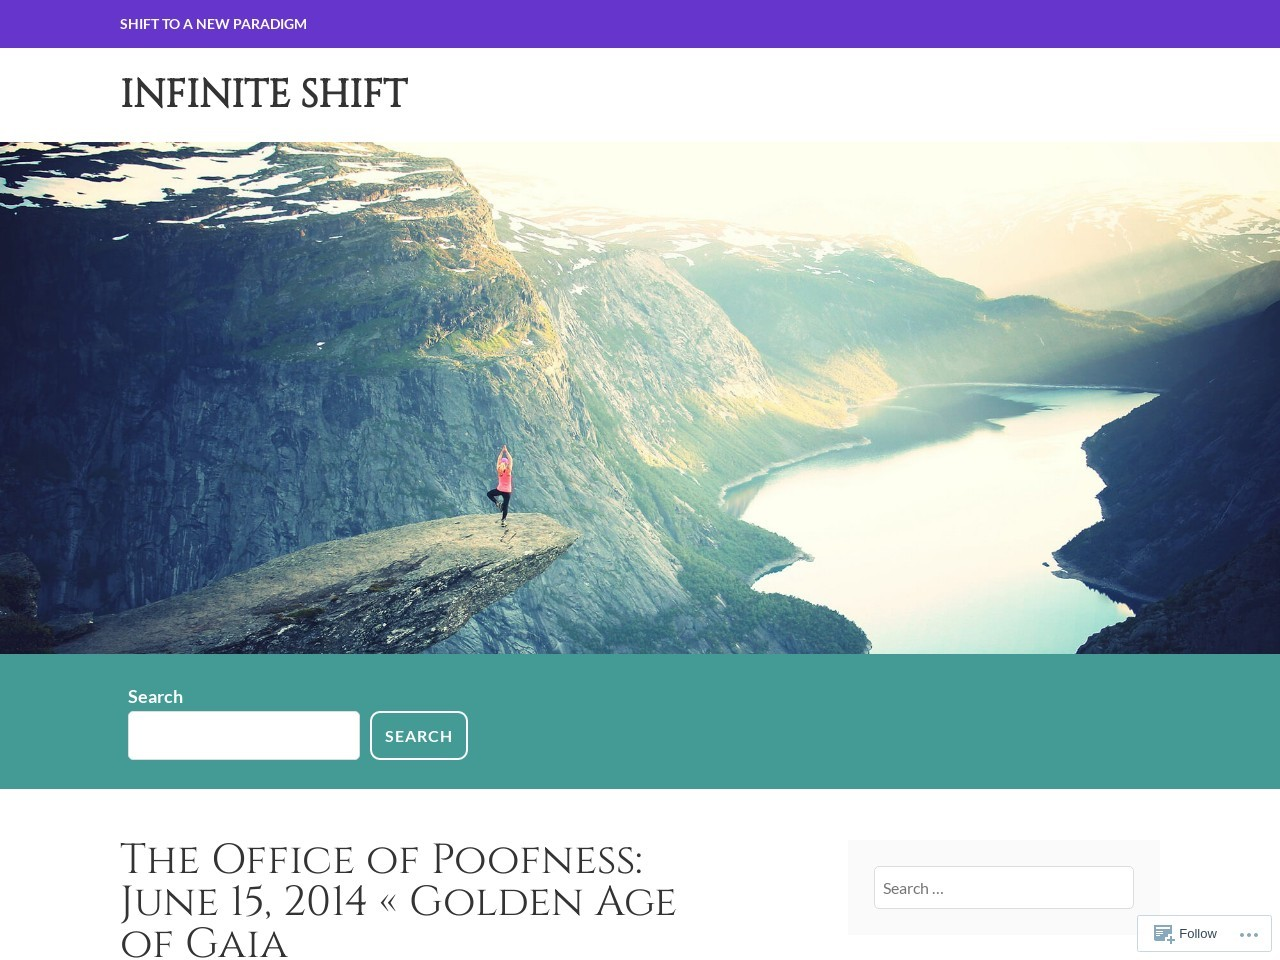 The Office of Poofness: June 15, 2014 « Golden Age of Gaia …